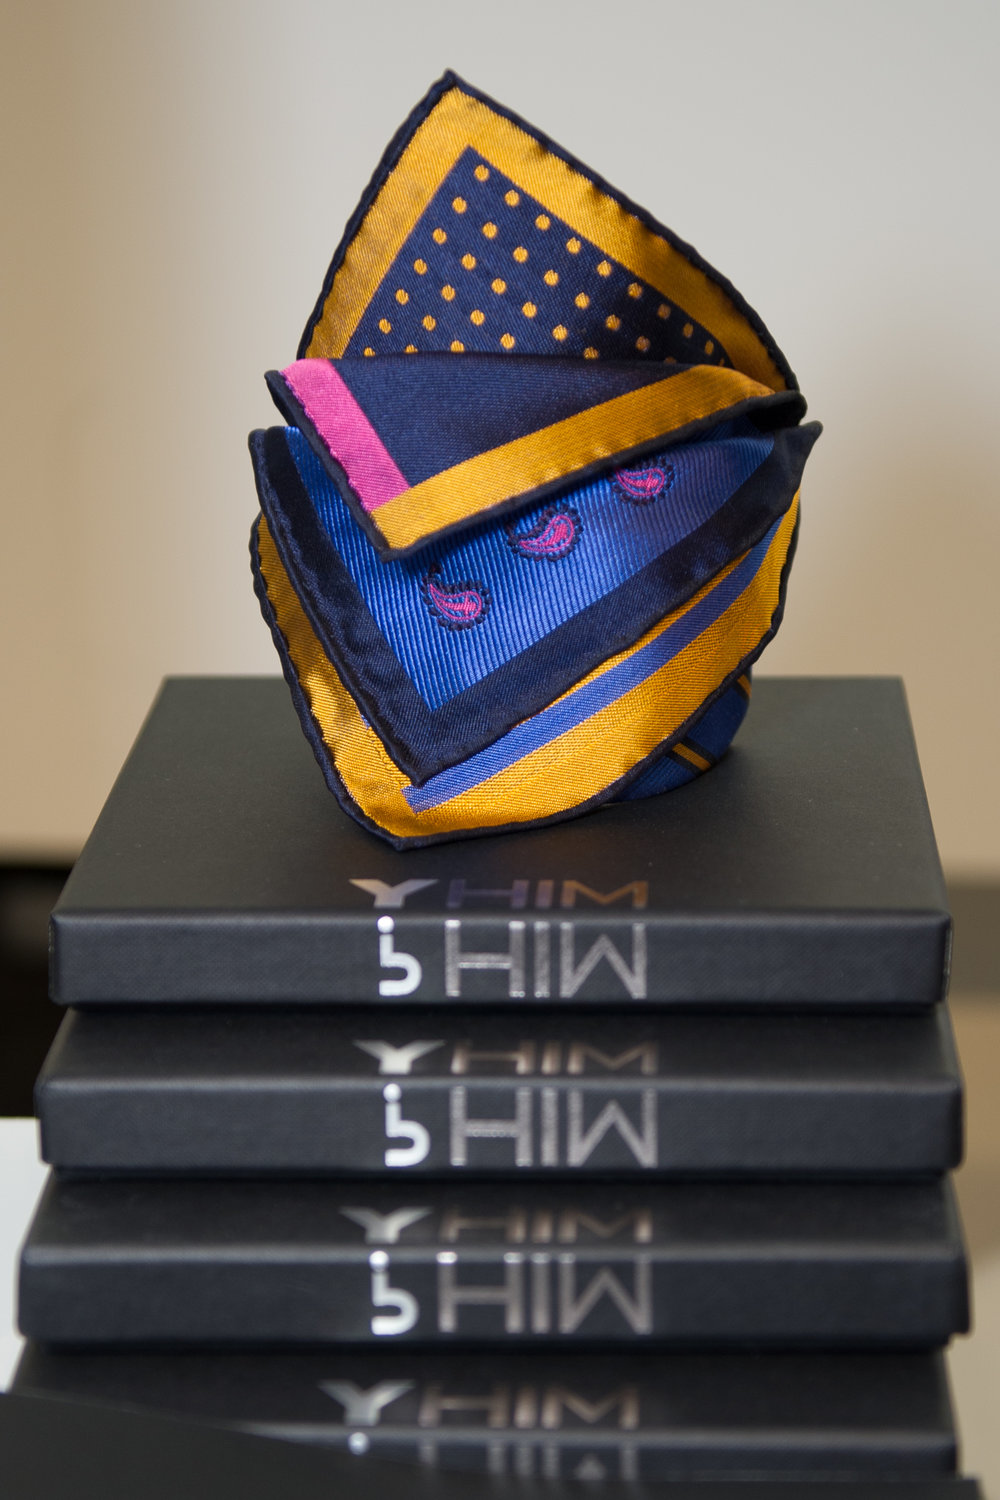 One of the pocket square combinations